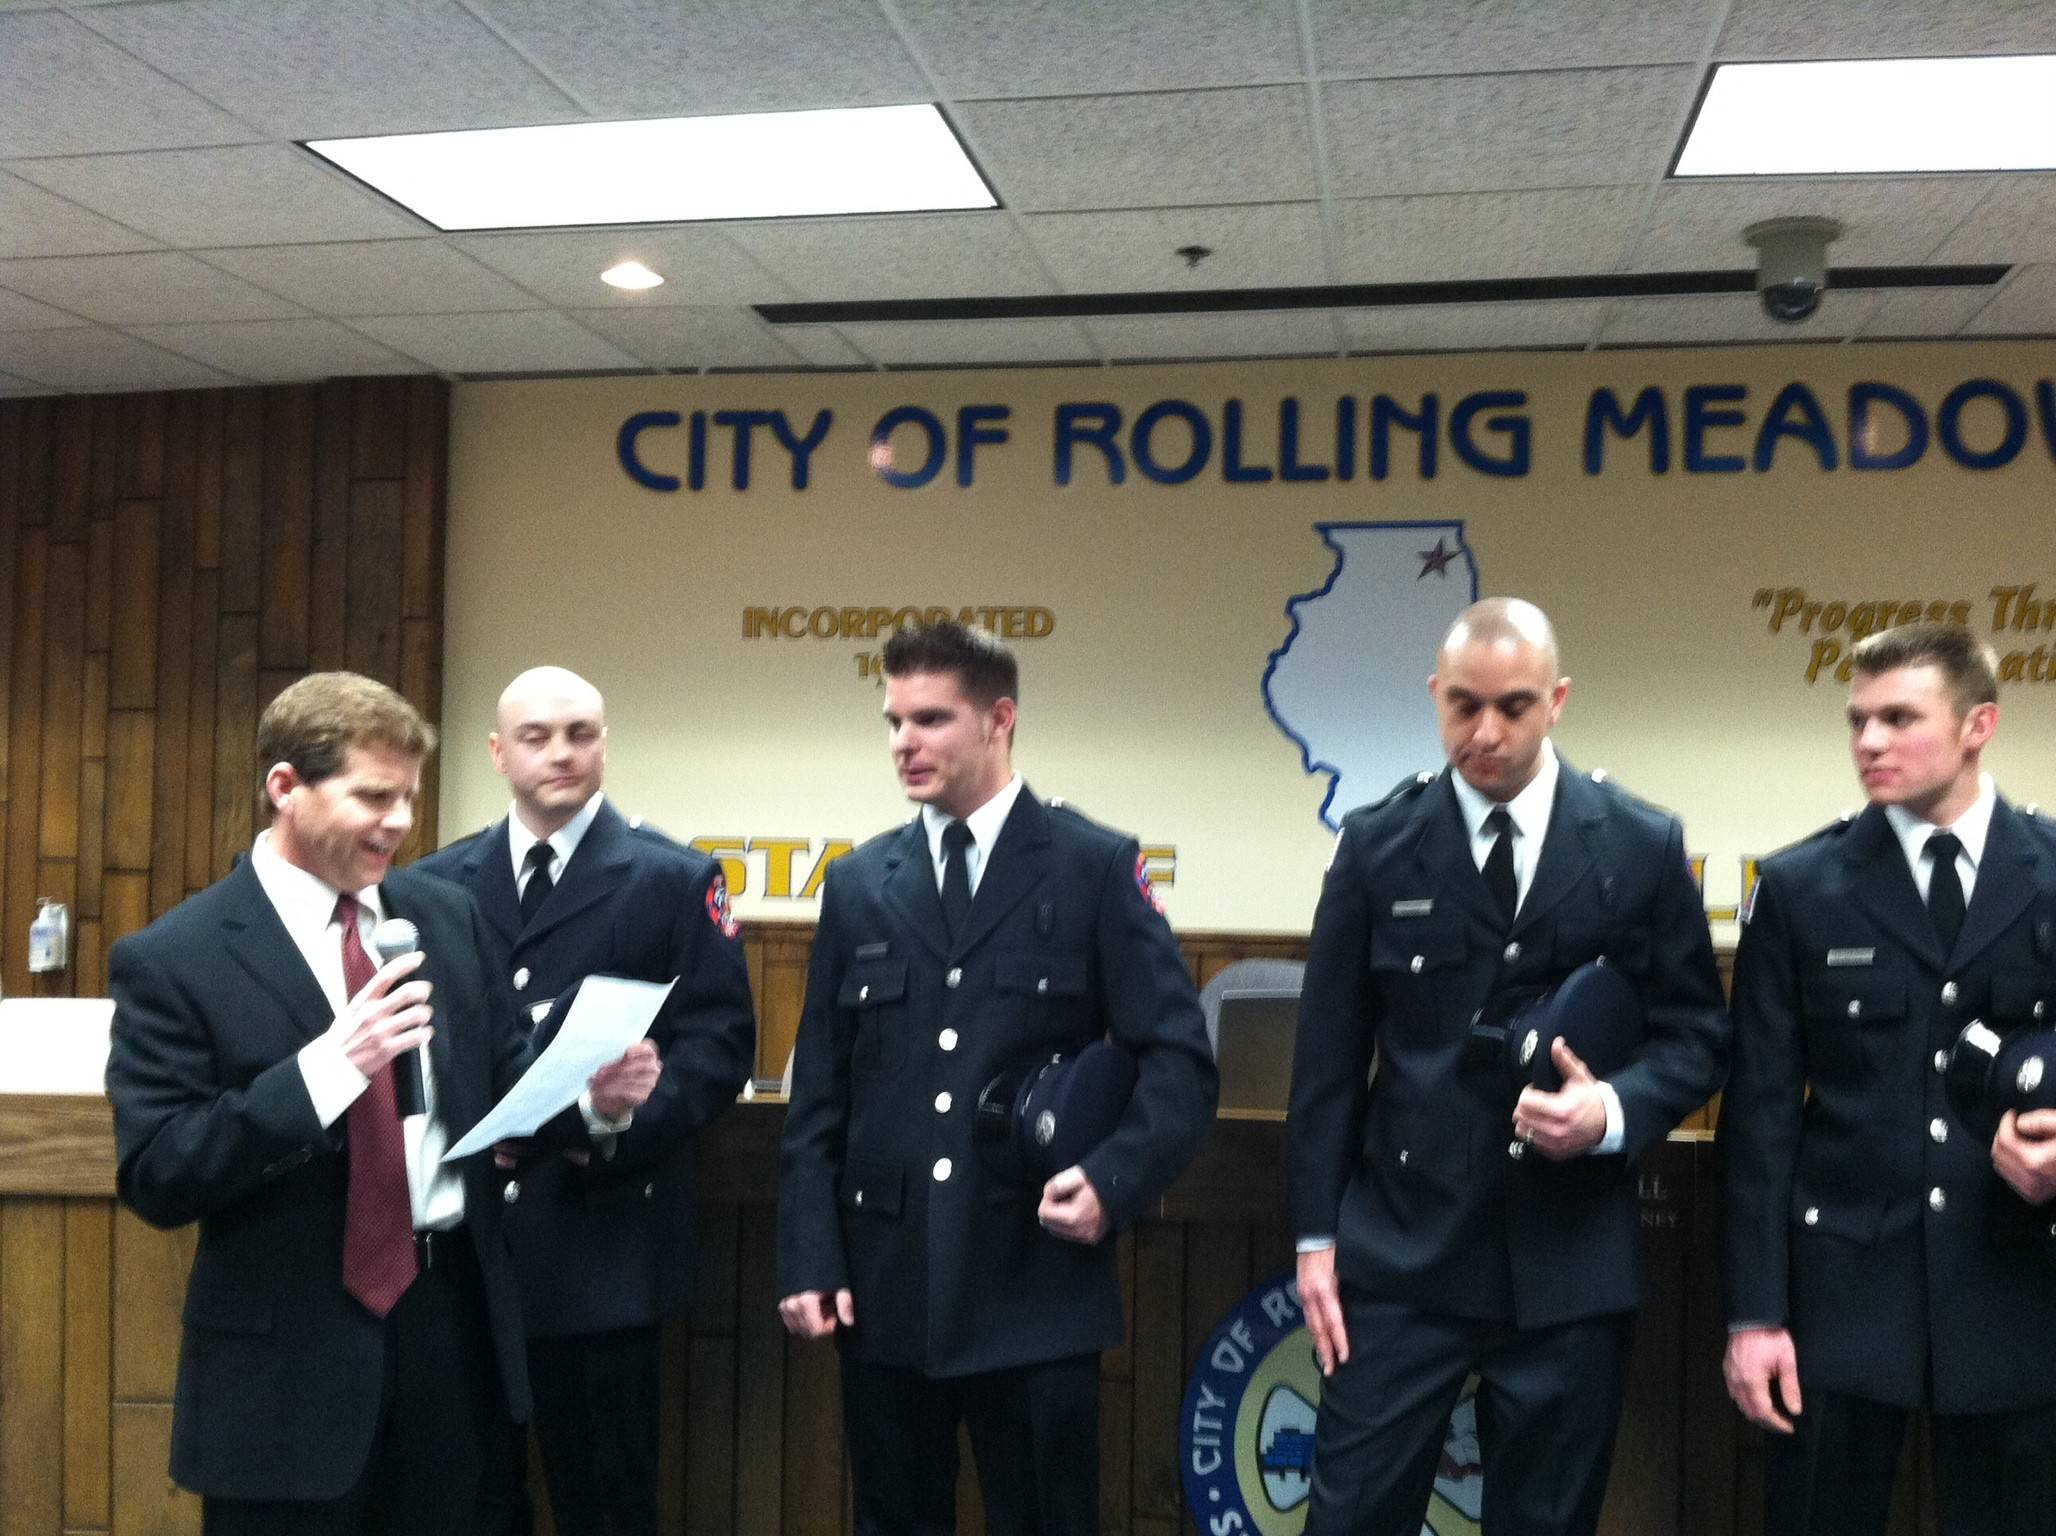 Rolling Meadows Mayor Rooney introduces new firefighter/ paramedics at a recent city council meeting. They are, from left: Paul Davis, Matt Cappelen, Jason Wenzel and John Loesch Jr.